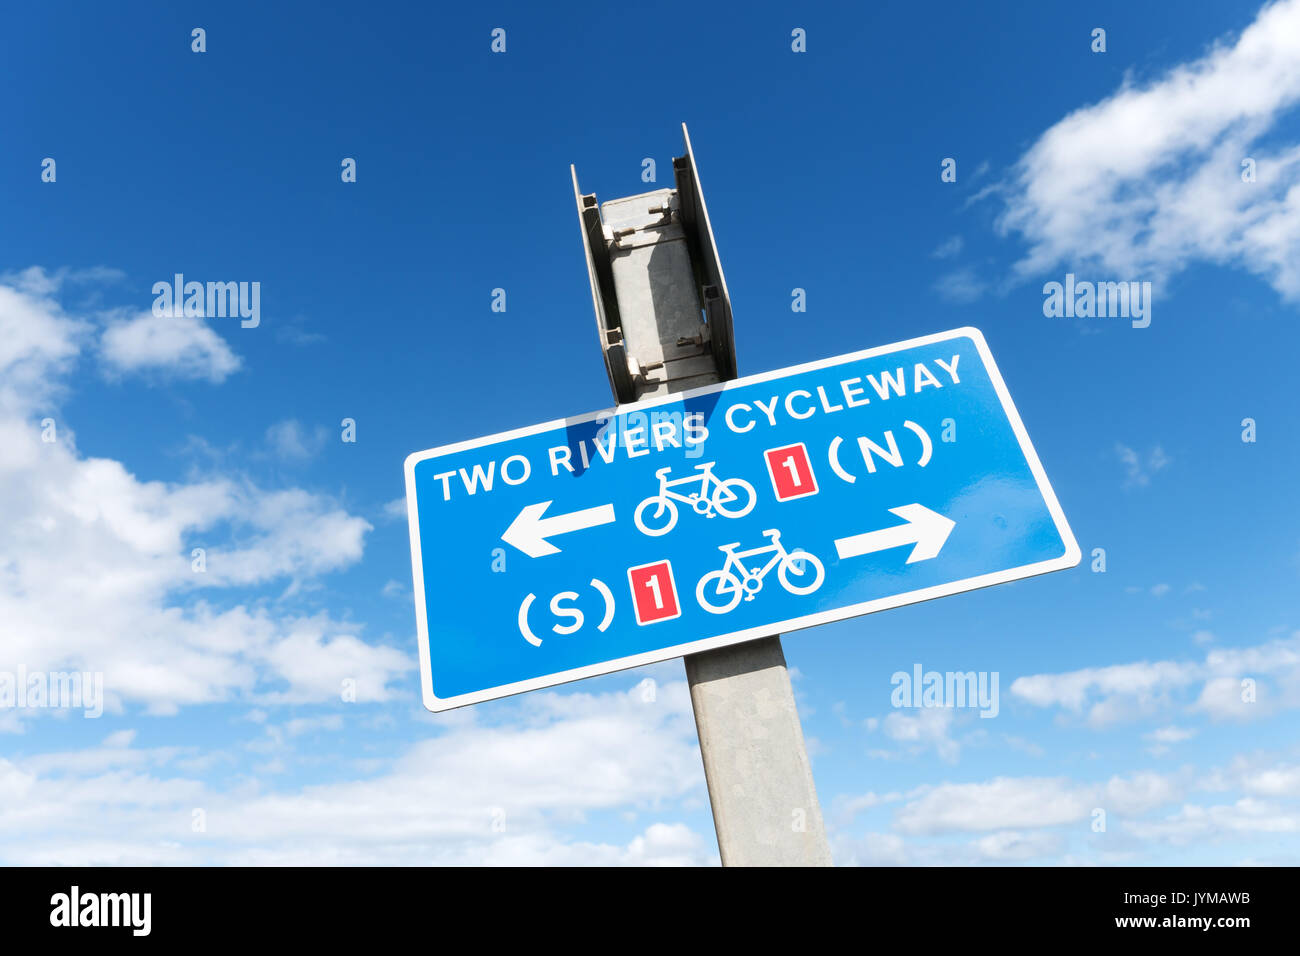 Two rivers (Tyne and Wear) cycleway sign, Whitburn, north east England, UK - Stock Image